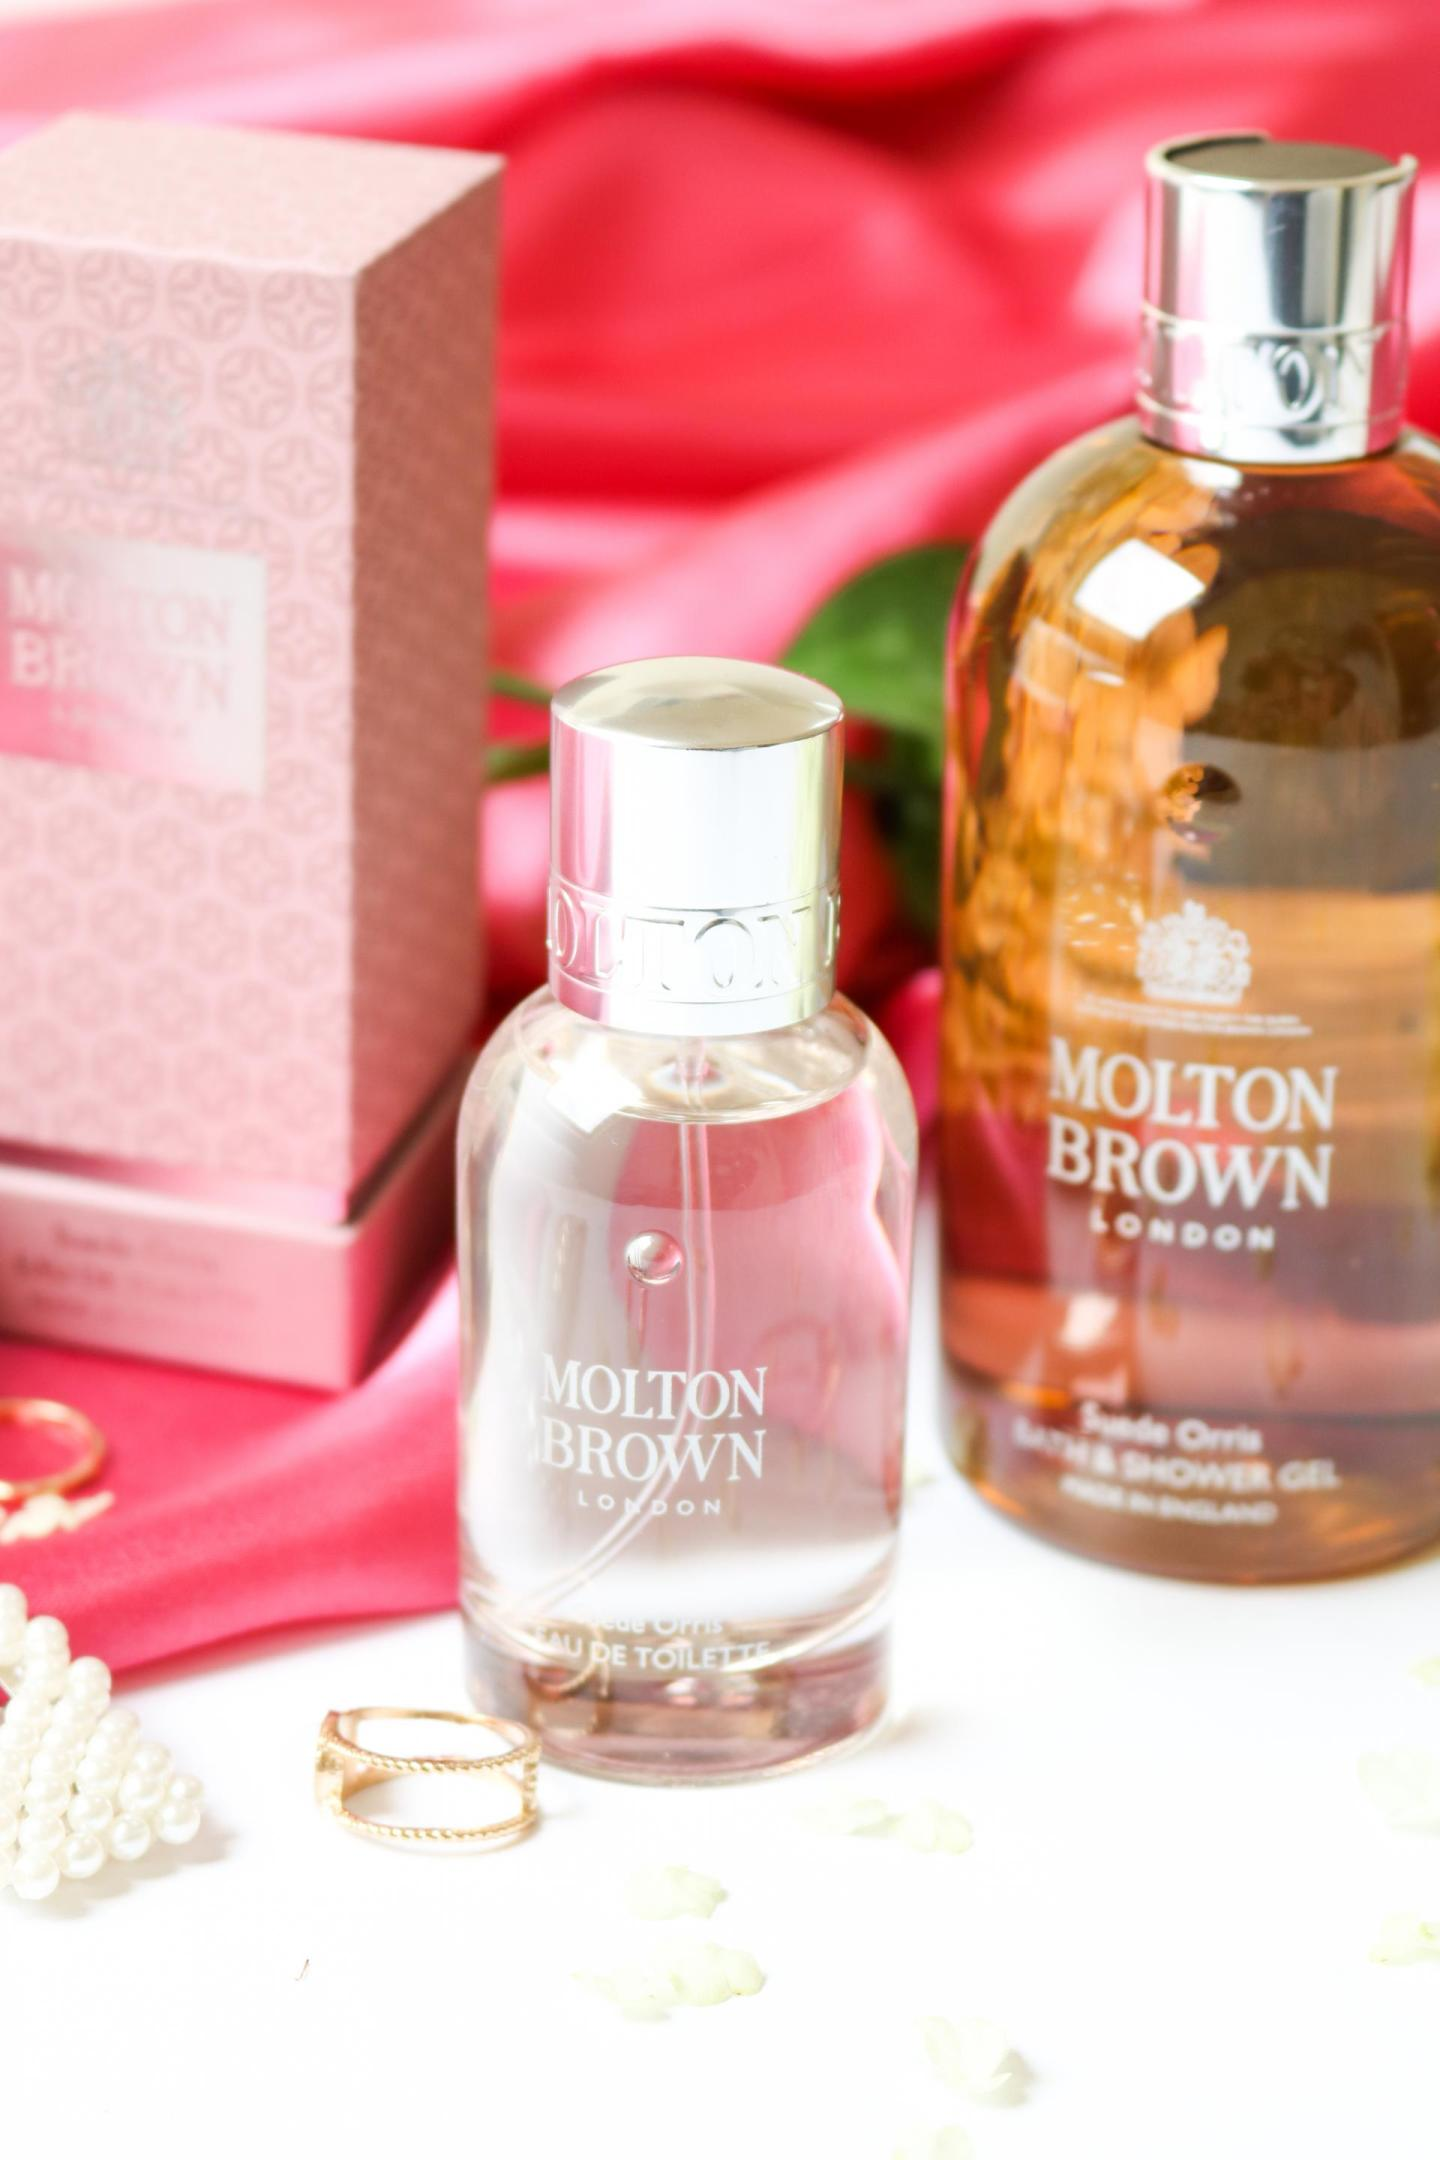 Molton Brown newest Suede Orris line